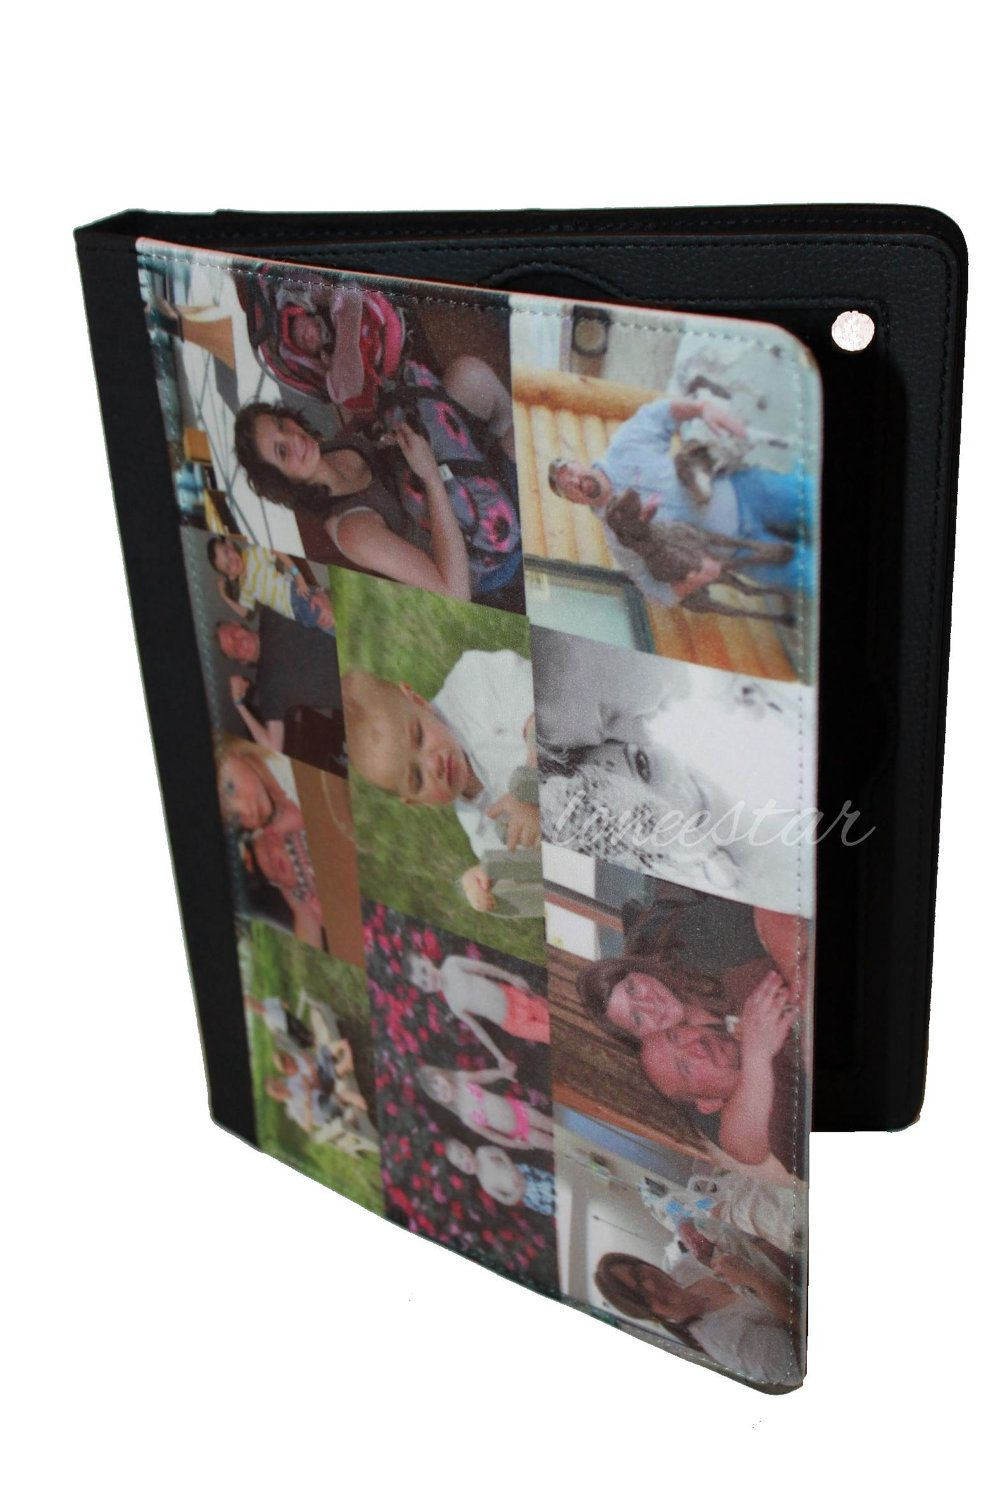 PERSONALIZED iPAD COVER- Great Gifts-Custom Designs-Personalized Photo iPad Case- Leather Covers for any iPad. $34.99, via Etsy.